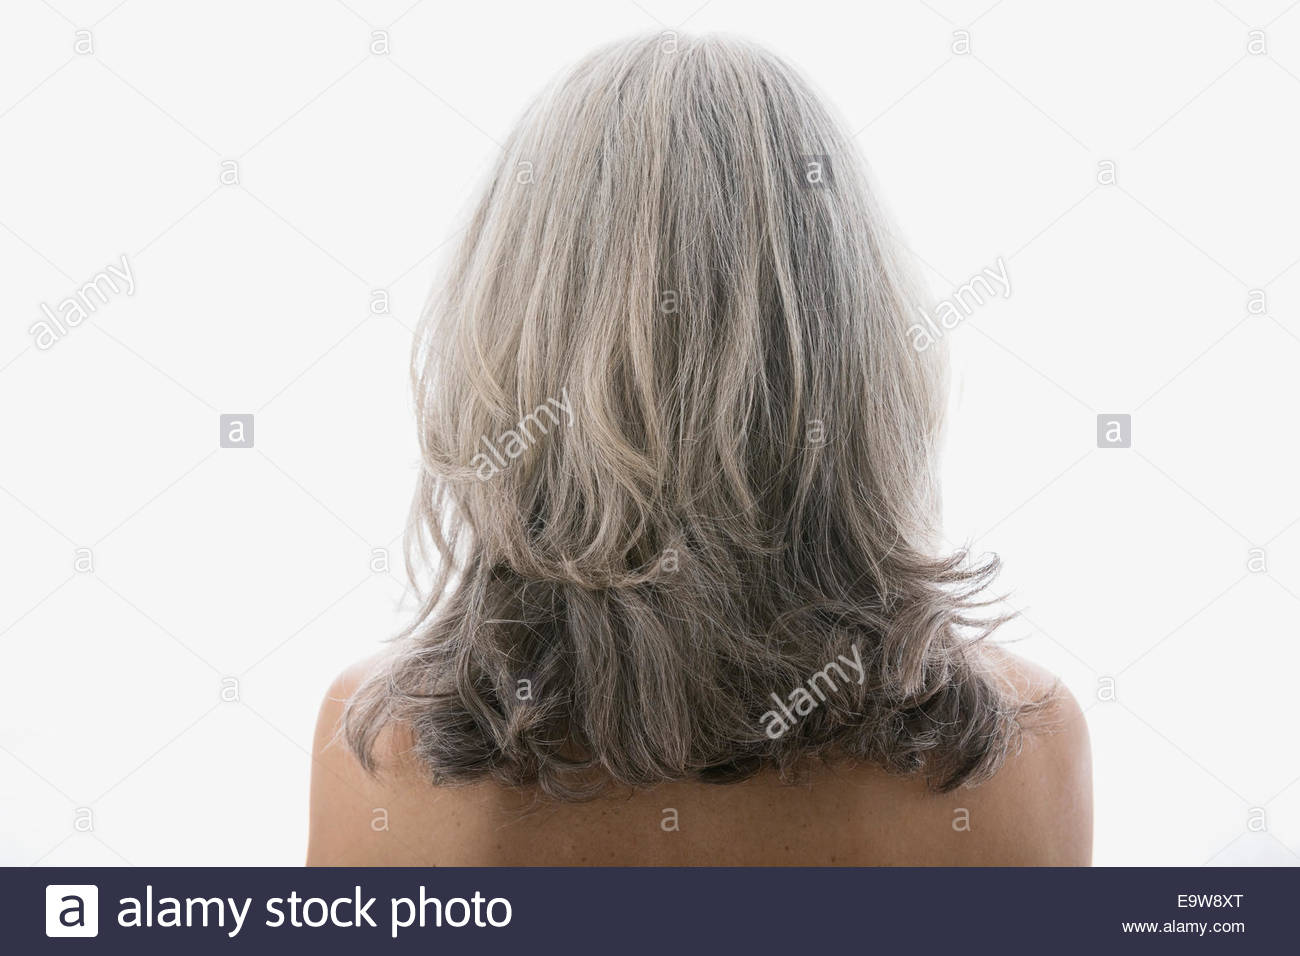 Rear view of senior woman with gray hair - Stock Image